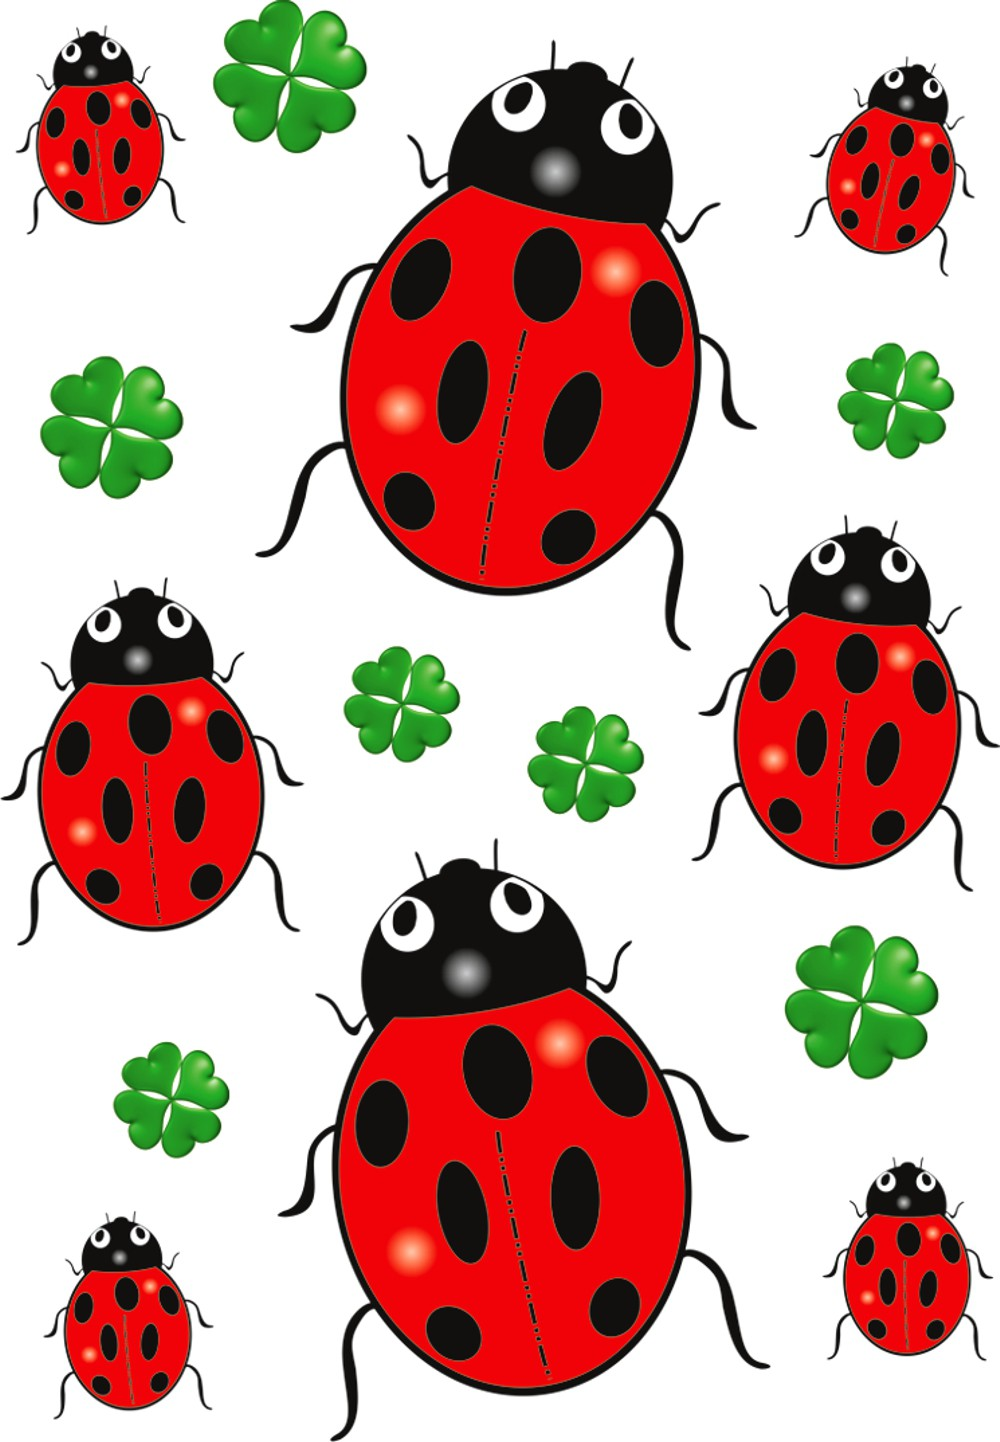 Sticker beetle and clover  300 x 200 mm